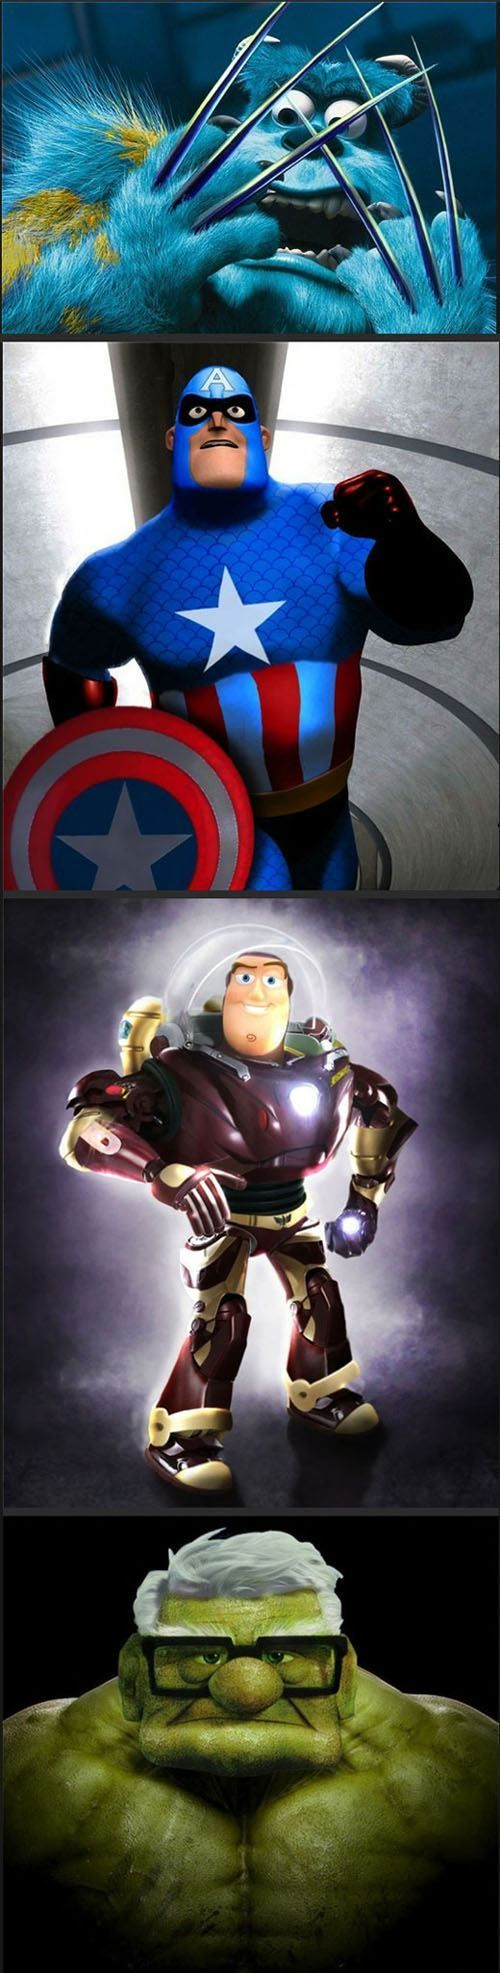 Disney characters as Marvel characters